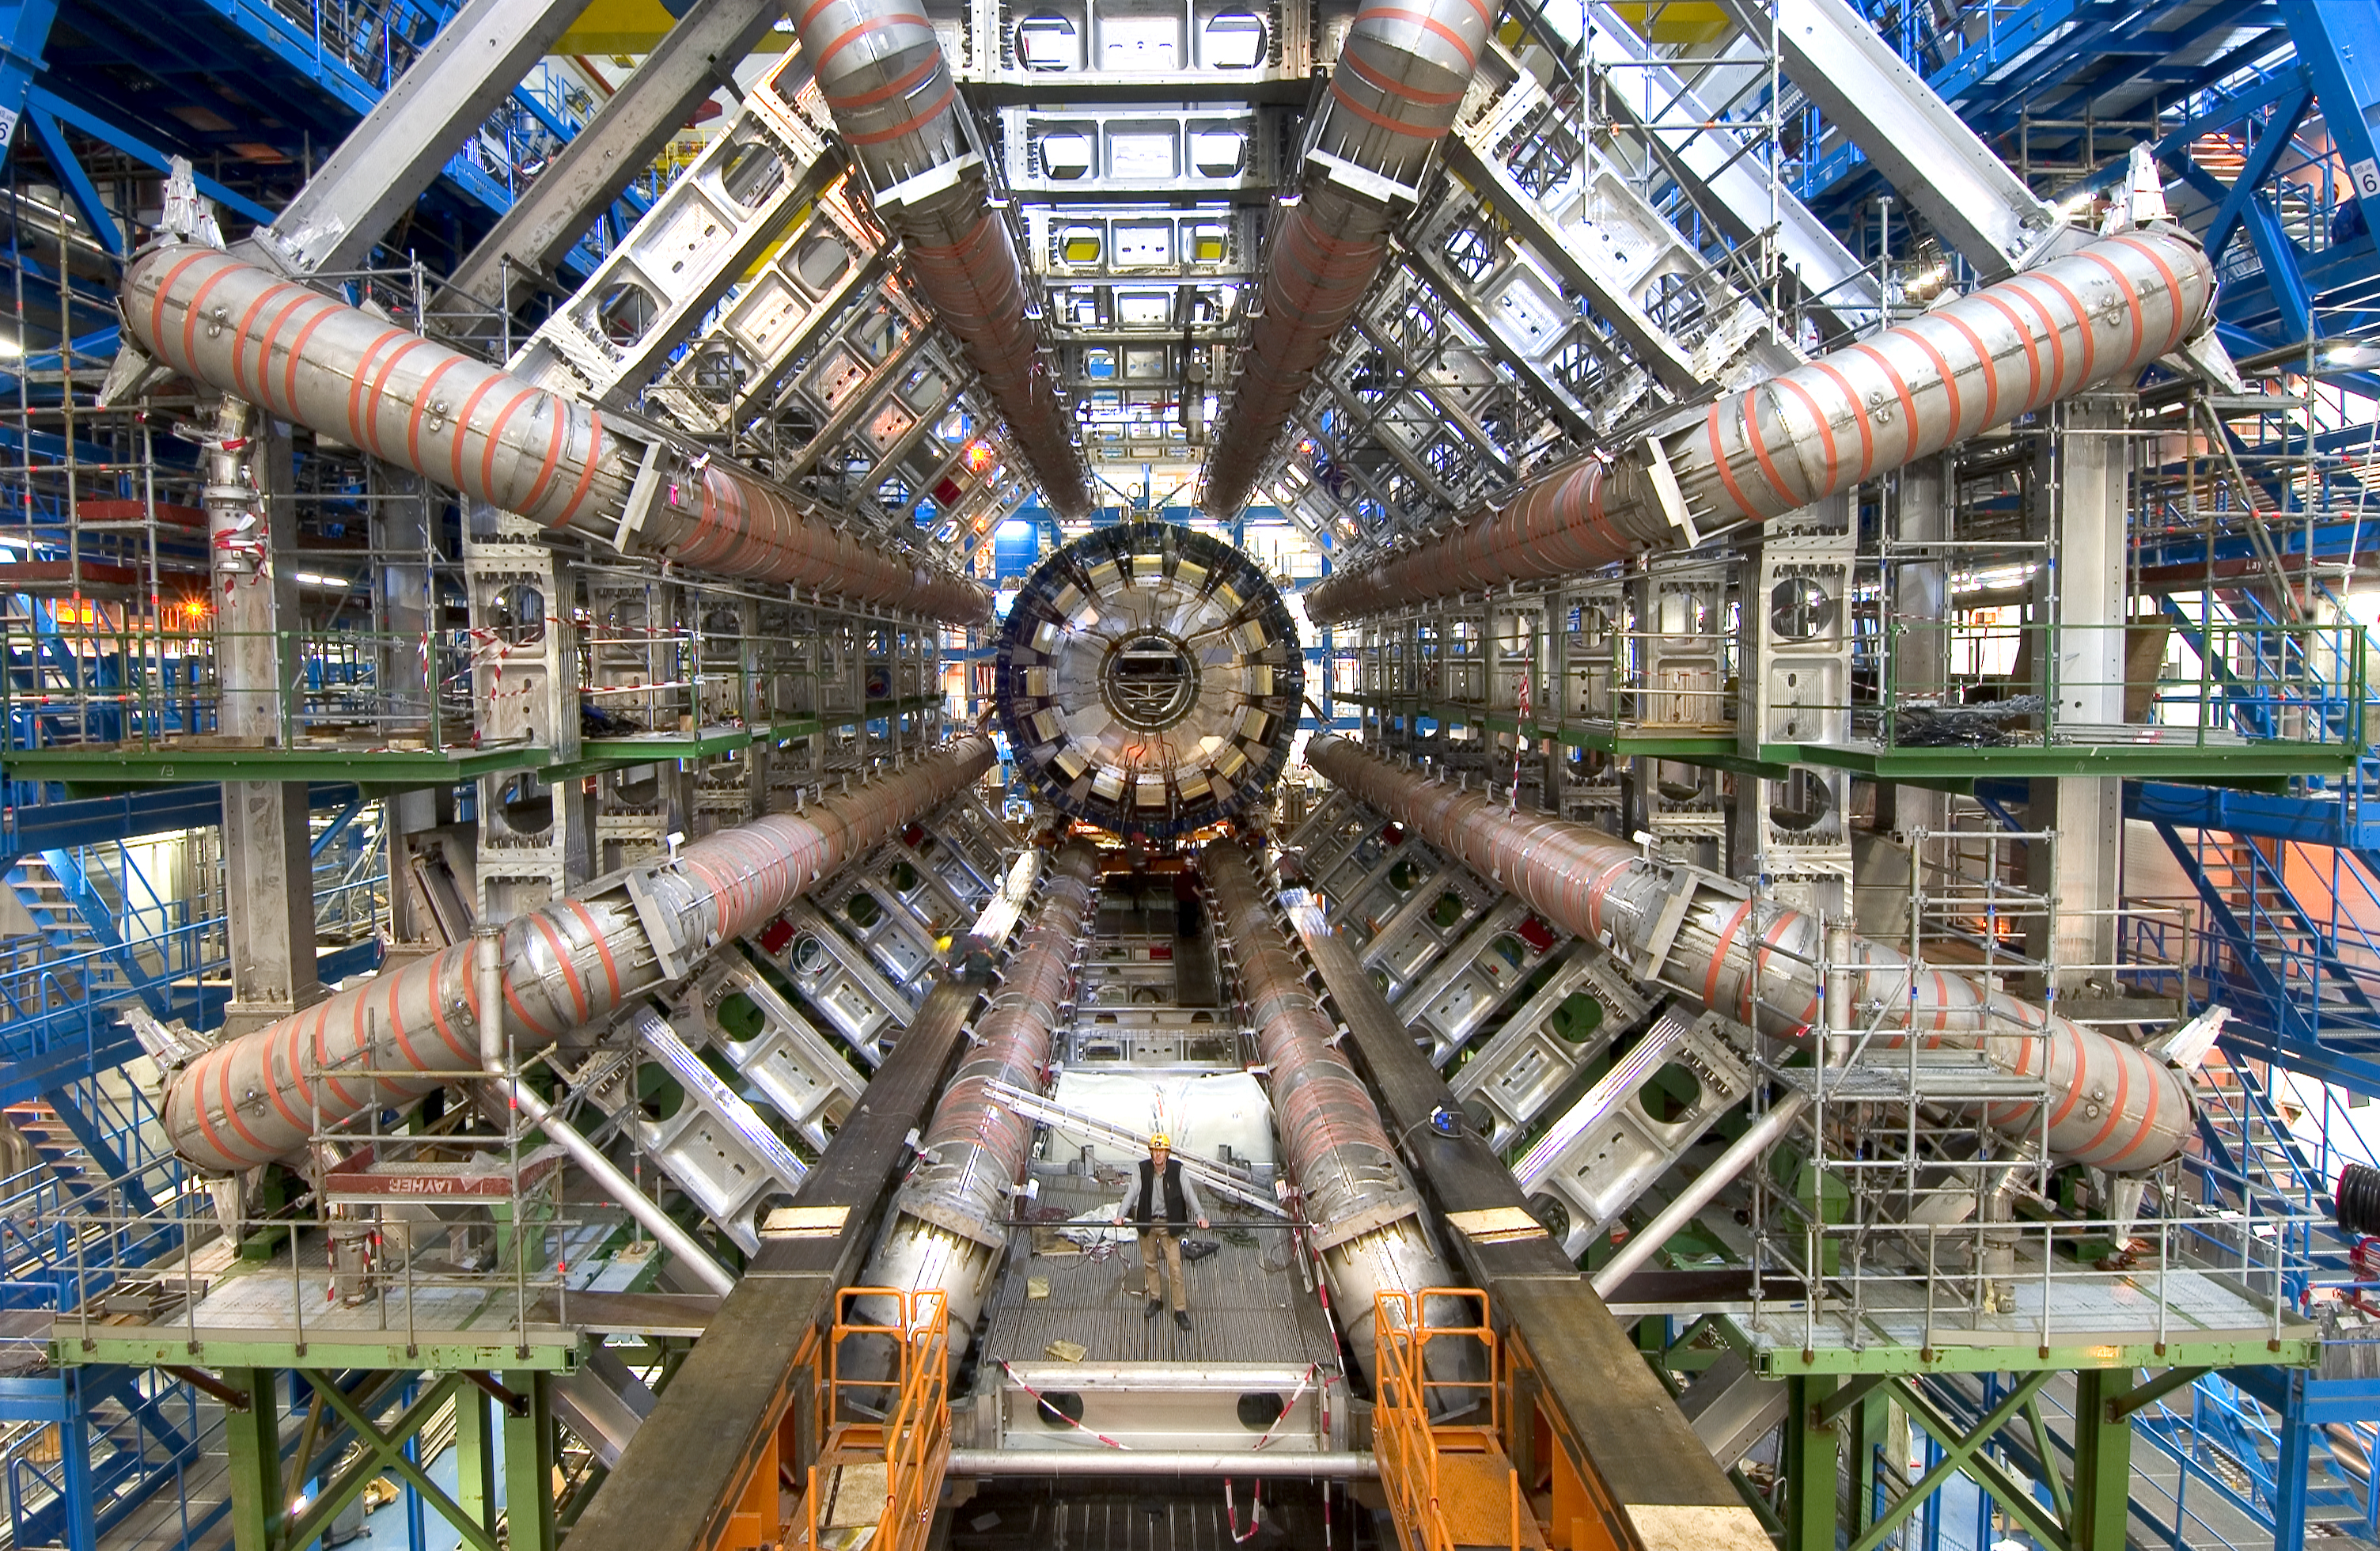 8 Mind Blowing Scientific Research Machines National Instruments The Worlds Largest Fusion Reactor See Full Resolution Source Image